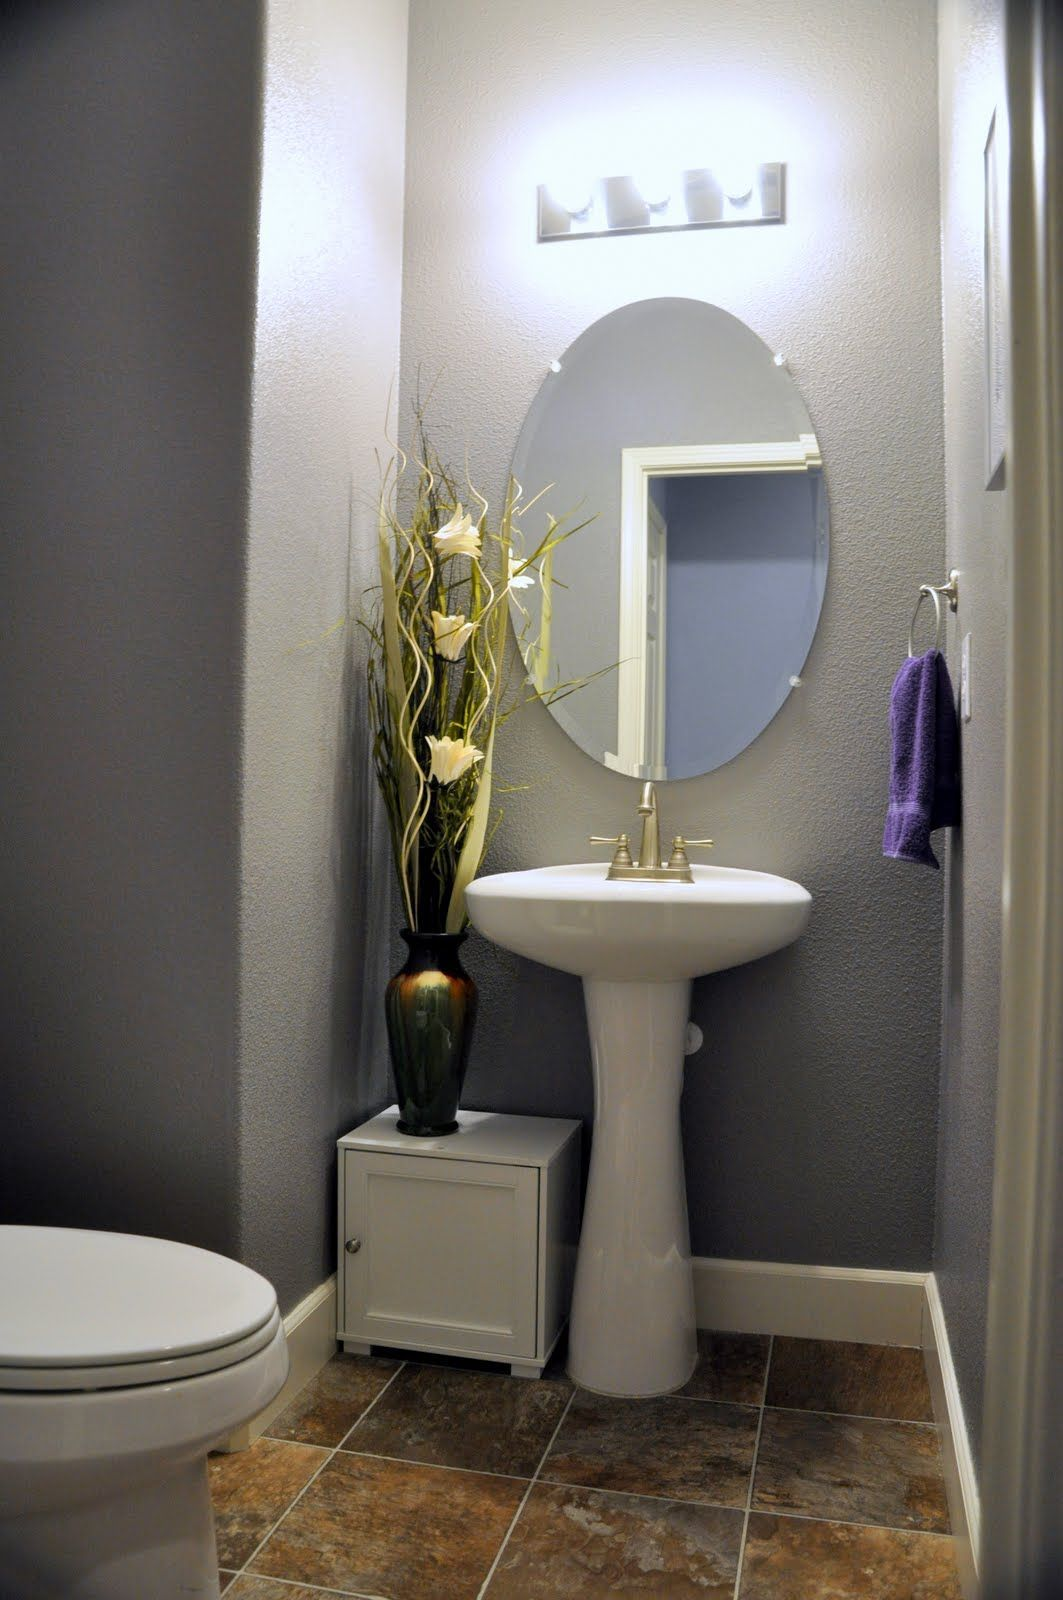 20 Beautiful Powder Room Ideas With Pedestal Sink With Images